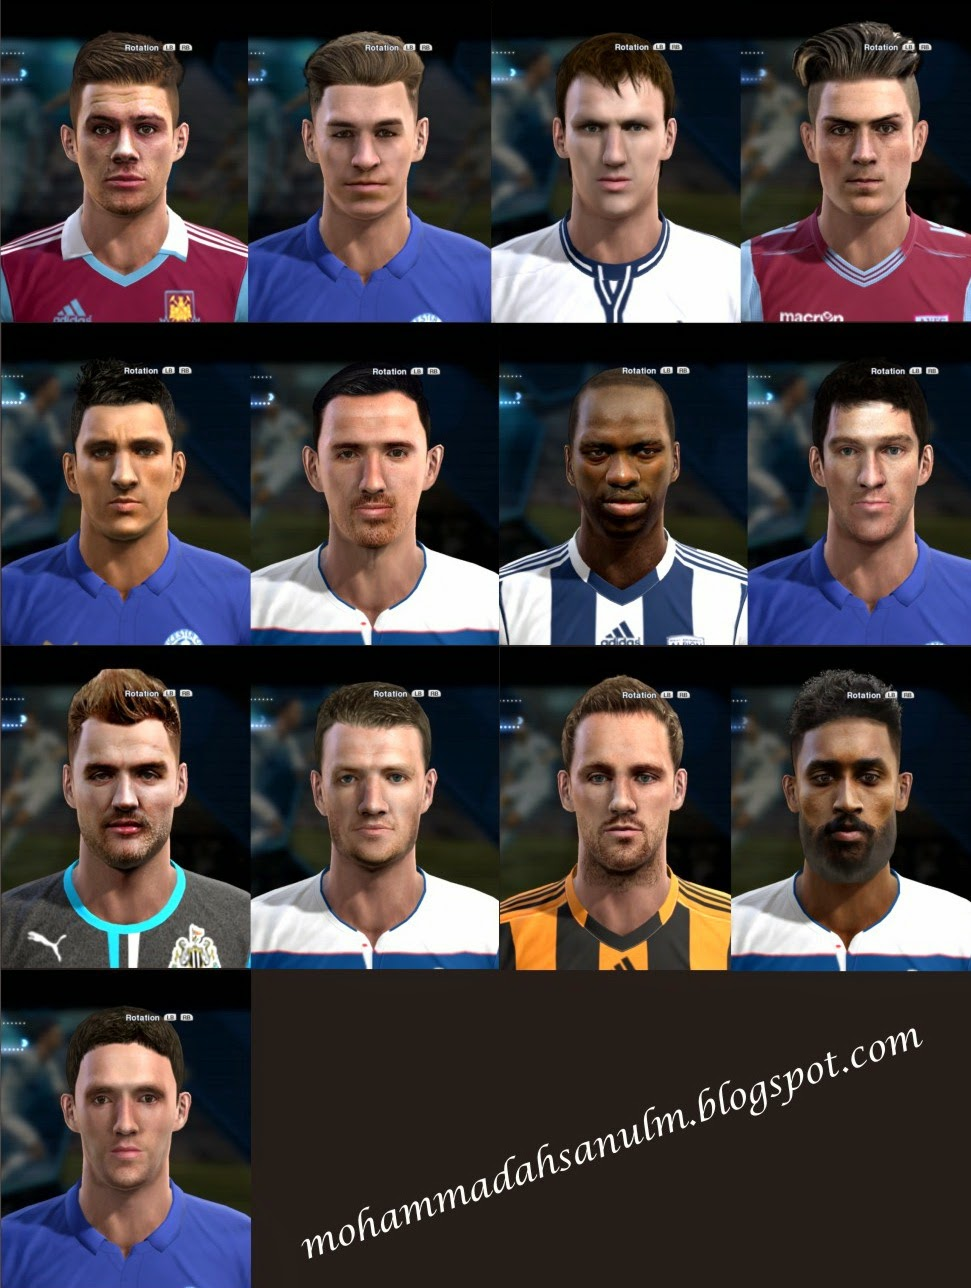 PES 2013 Collab Facepack #3 by Emmrow & bradpit62